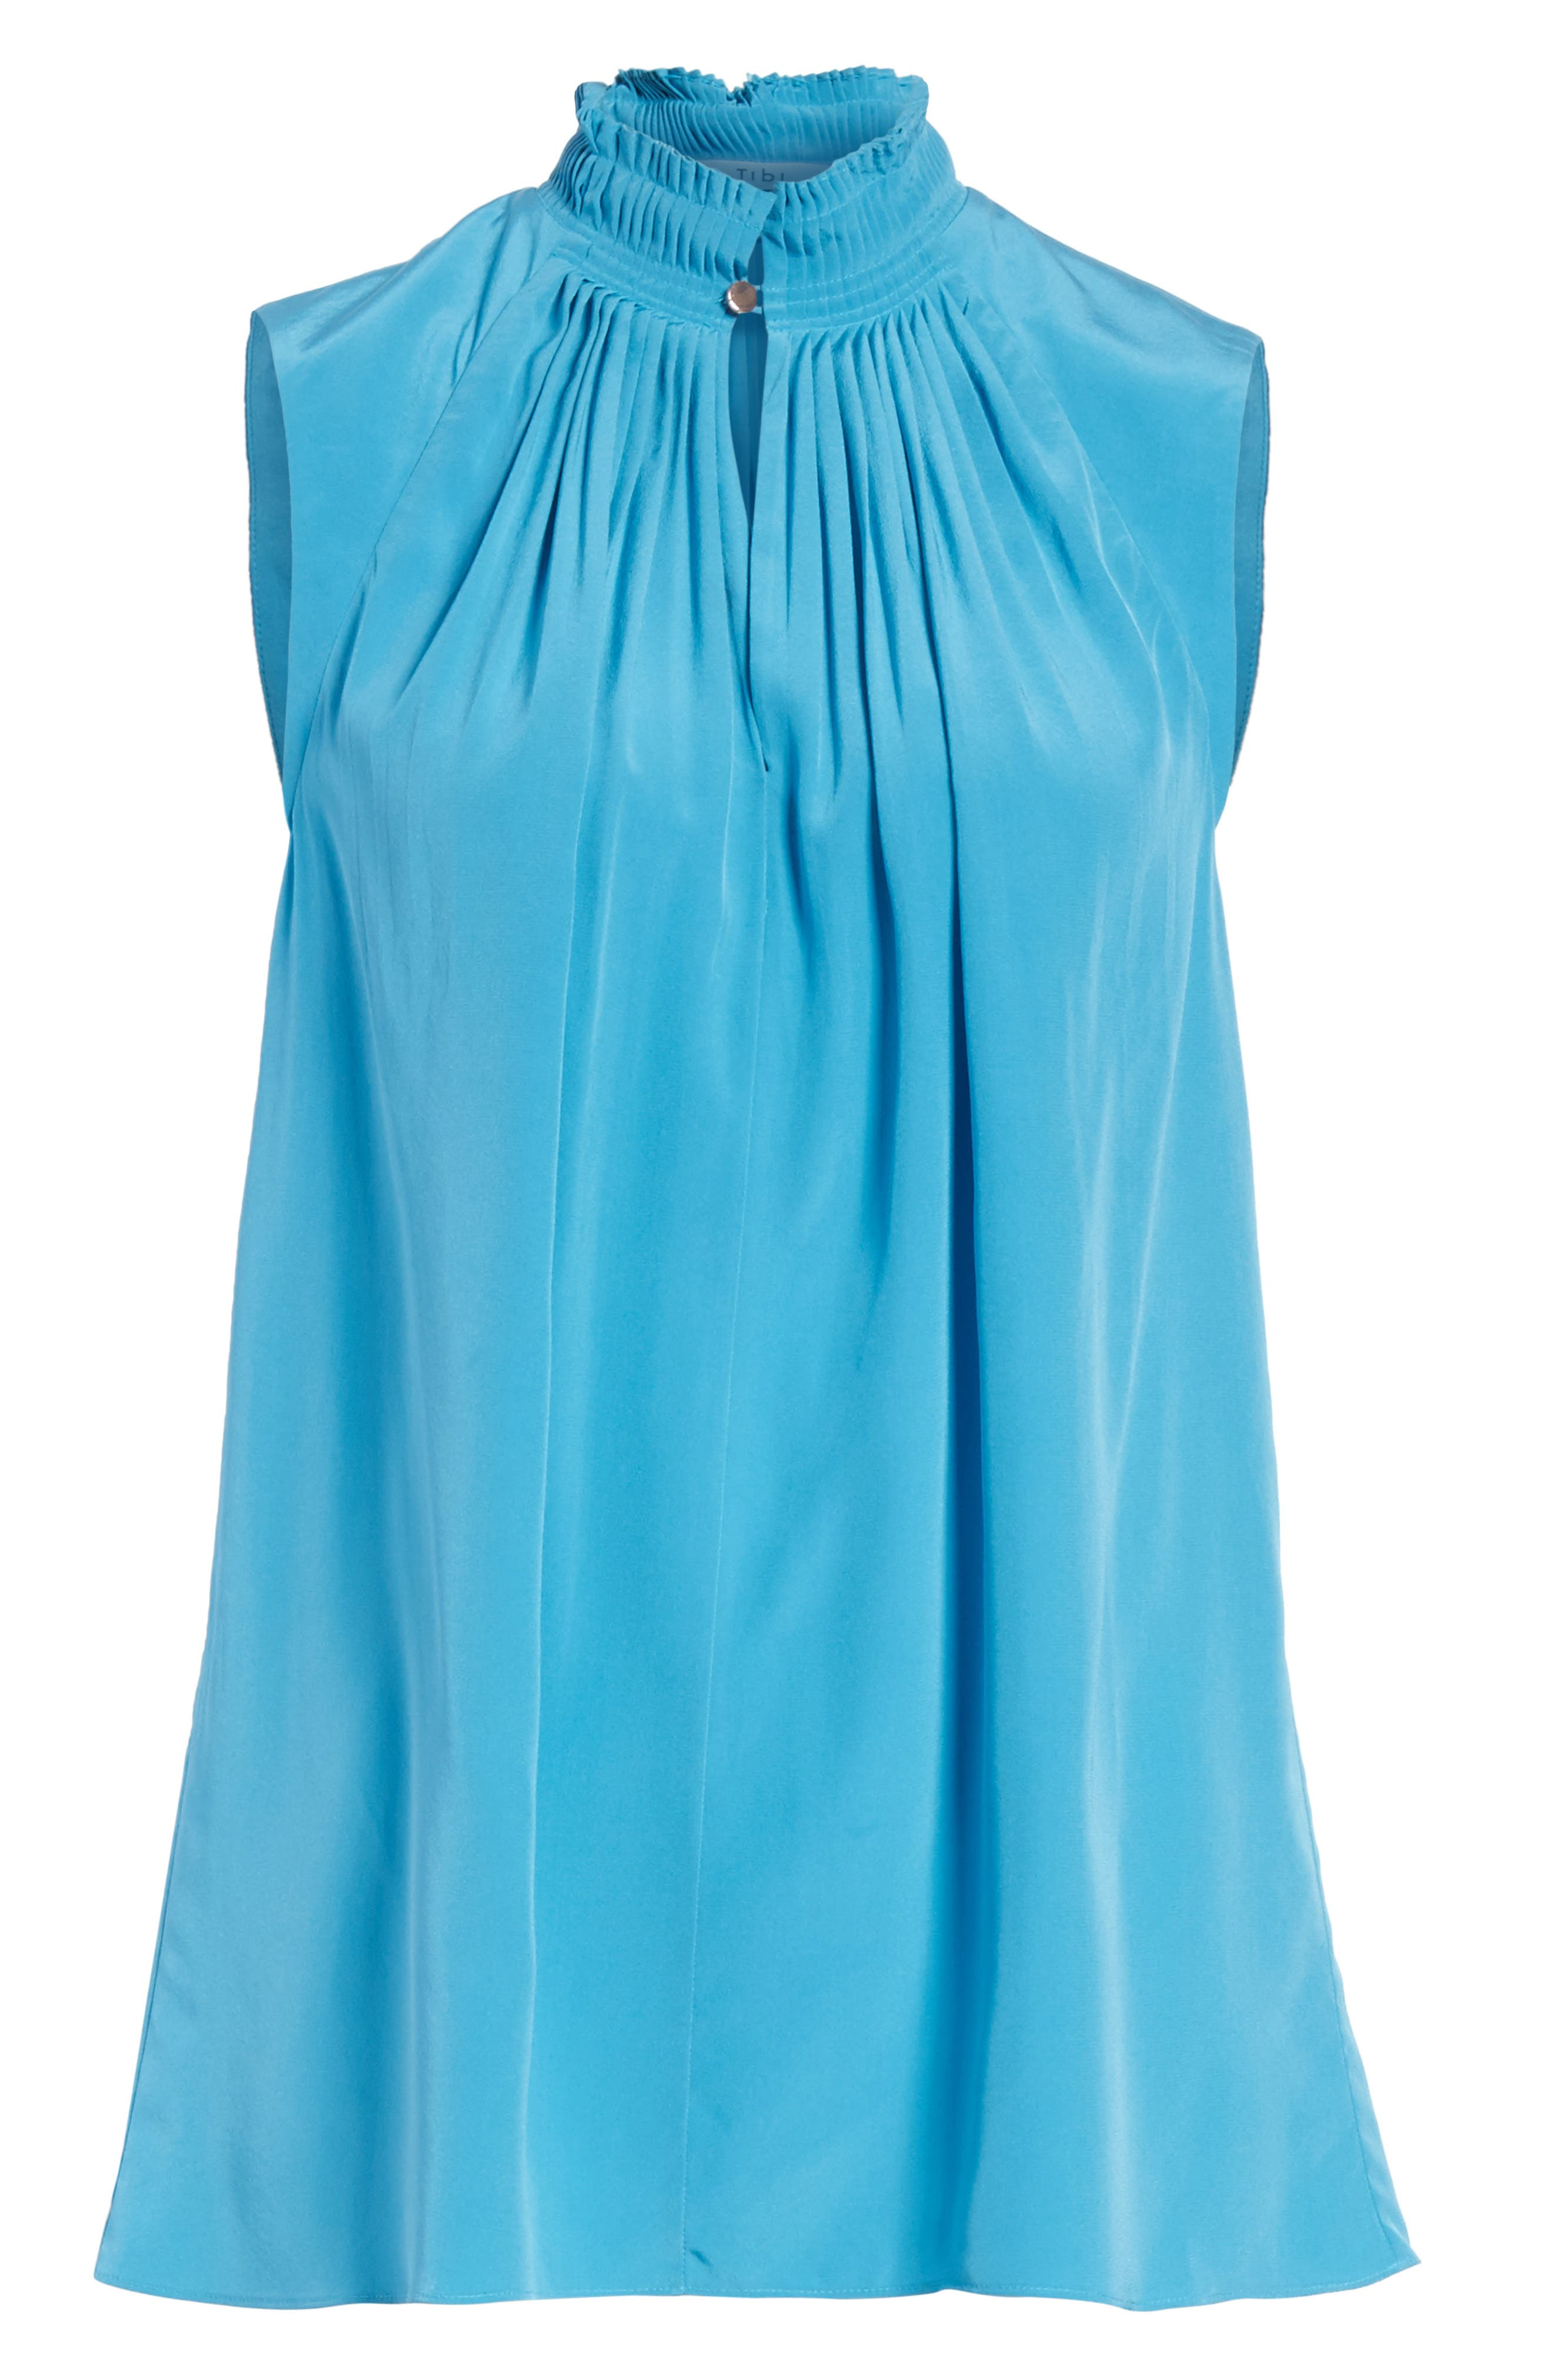 Arielle Sleeveless Silk Top,                             Alternate thumbnail 6, color,                             Bowery Blue